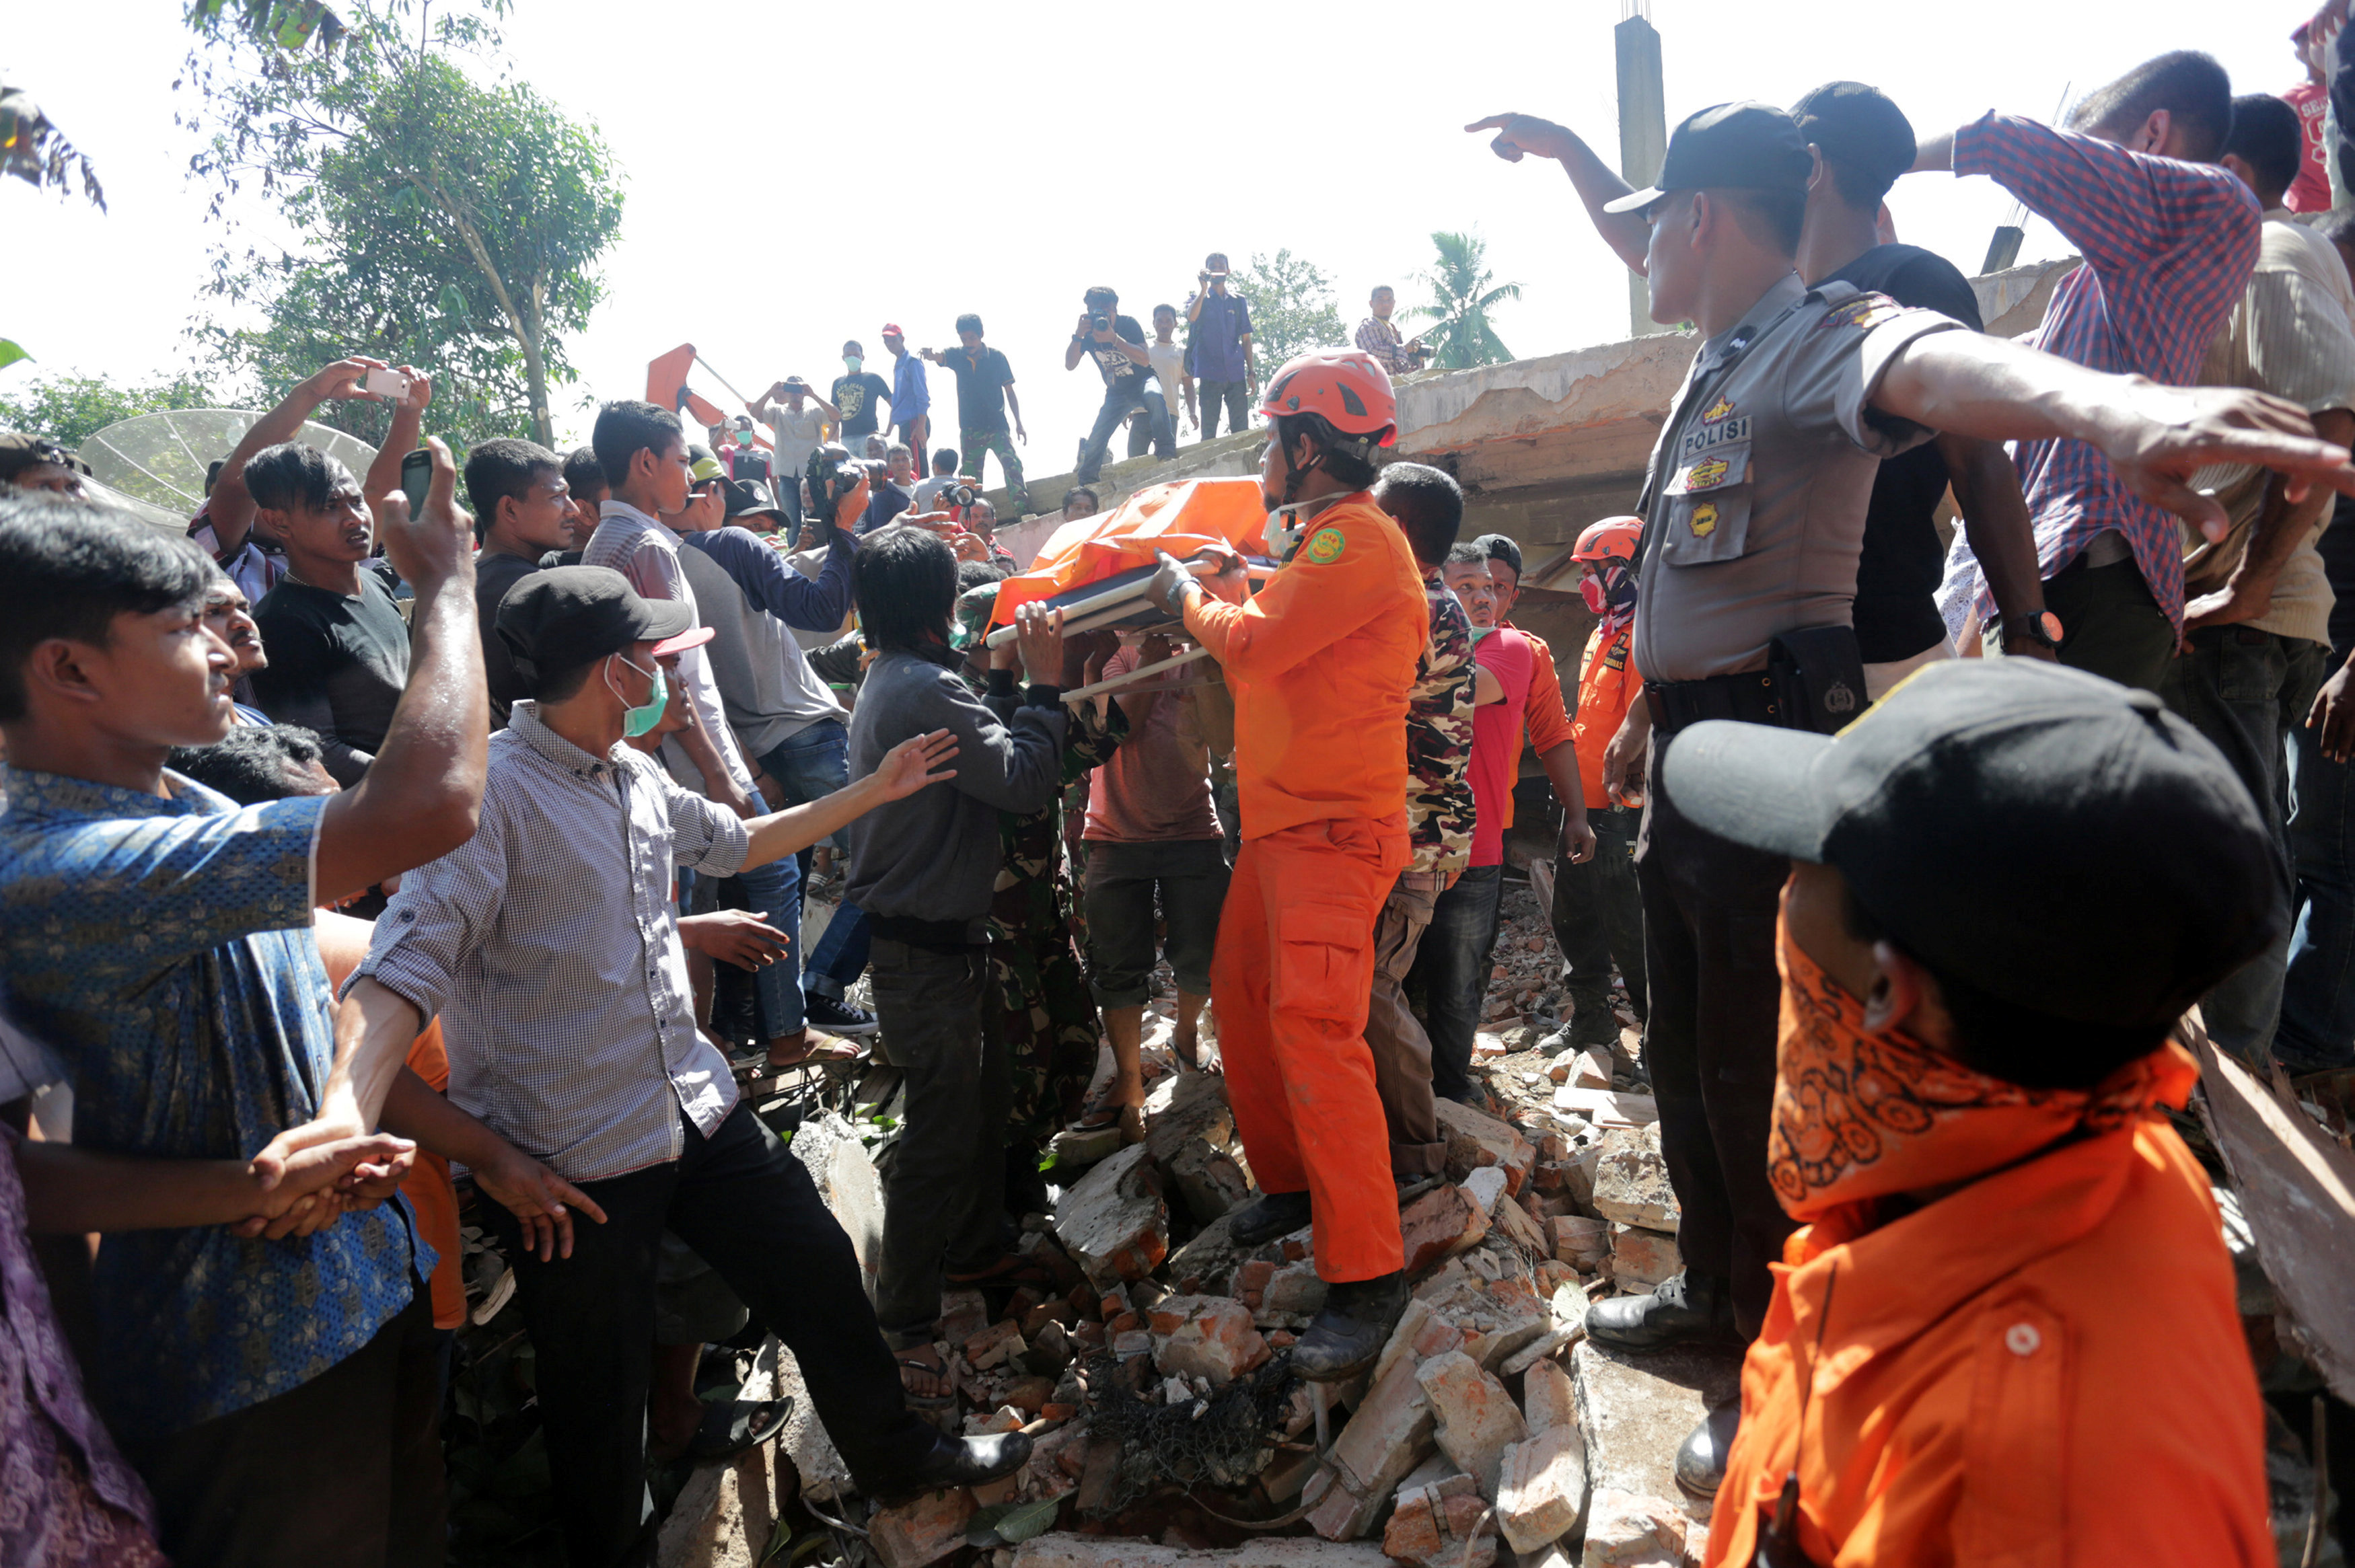 Rescue workers and police remove a victim from a collapsed building following an earthquake in Lueng Putu, Pidie Jaya in the northern province of Aceh, Indonesia